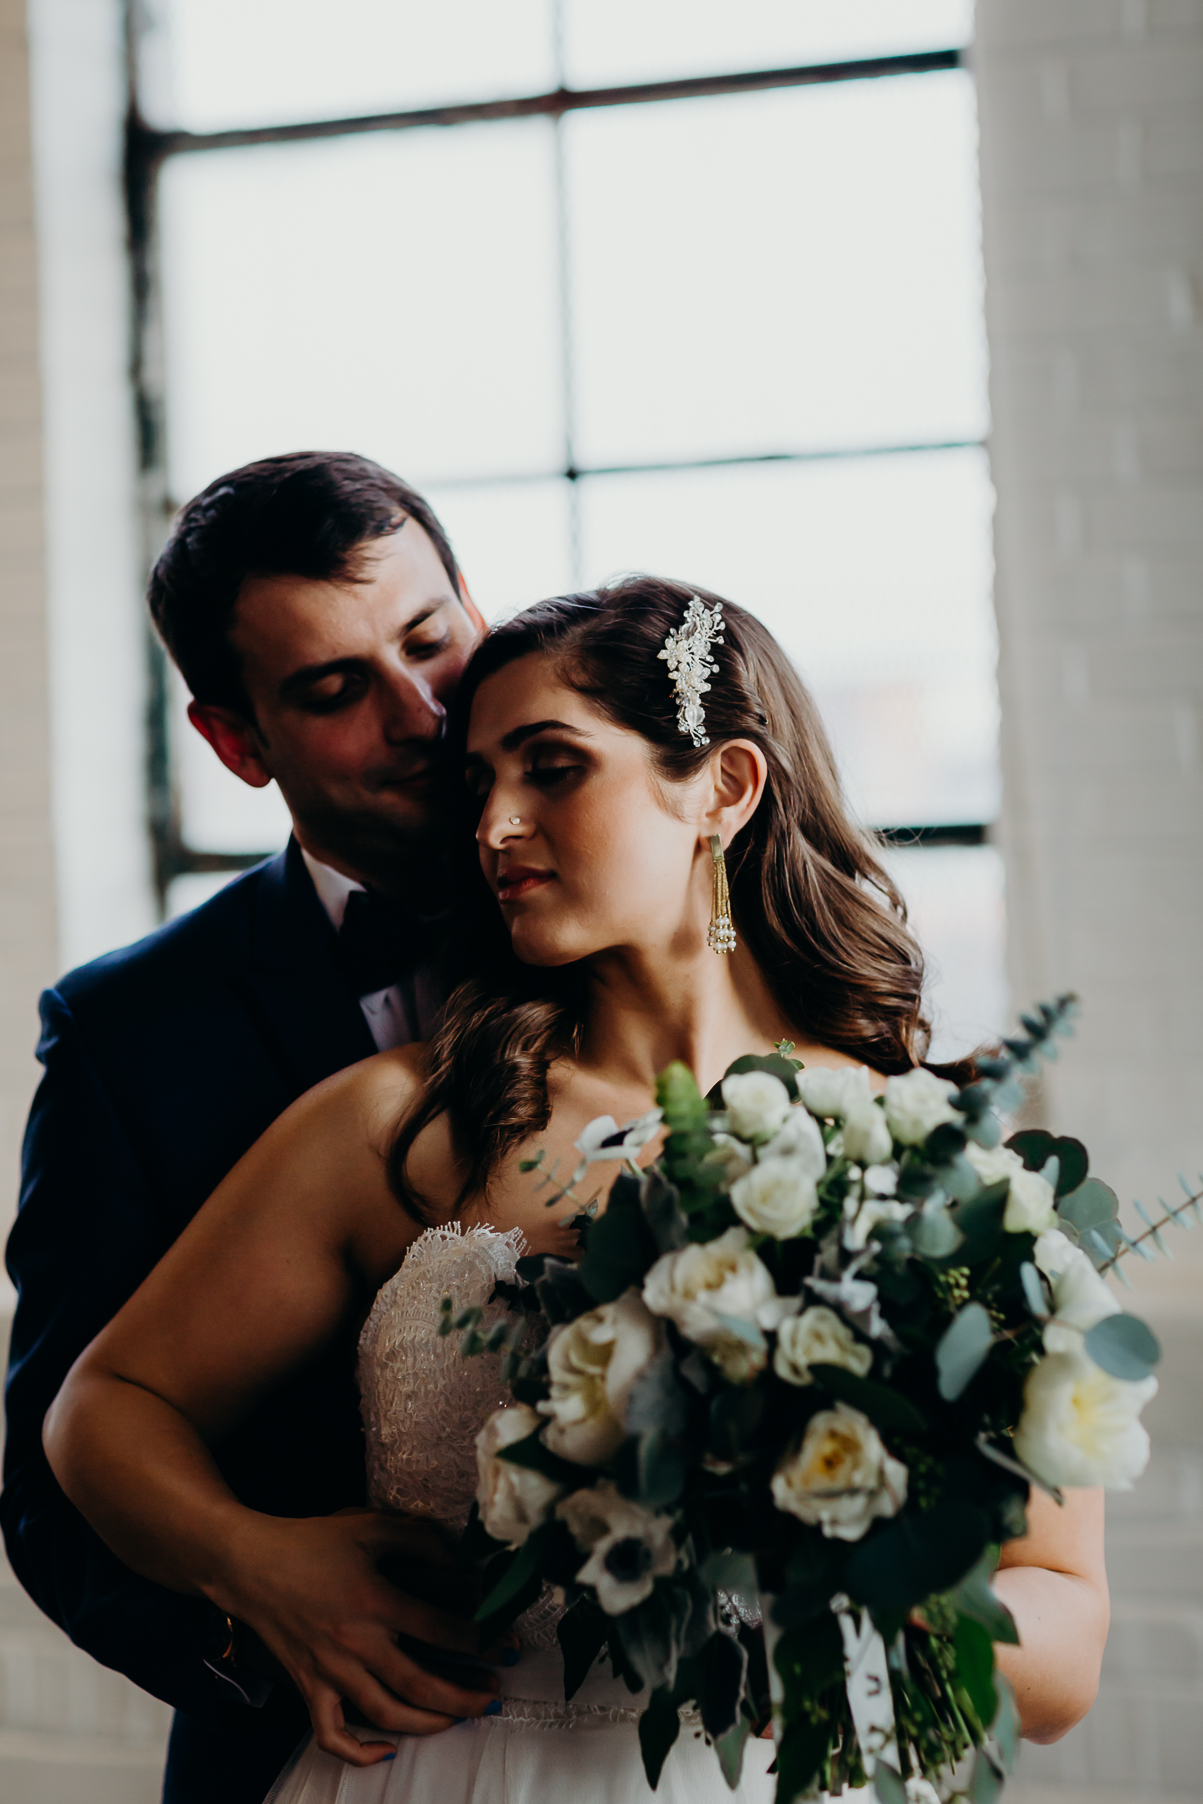 Gianna Keiko Atlanta NYC California Wedding Elopement Photographer_Sneak Peek-37.jpg